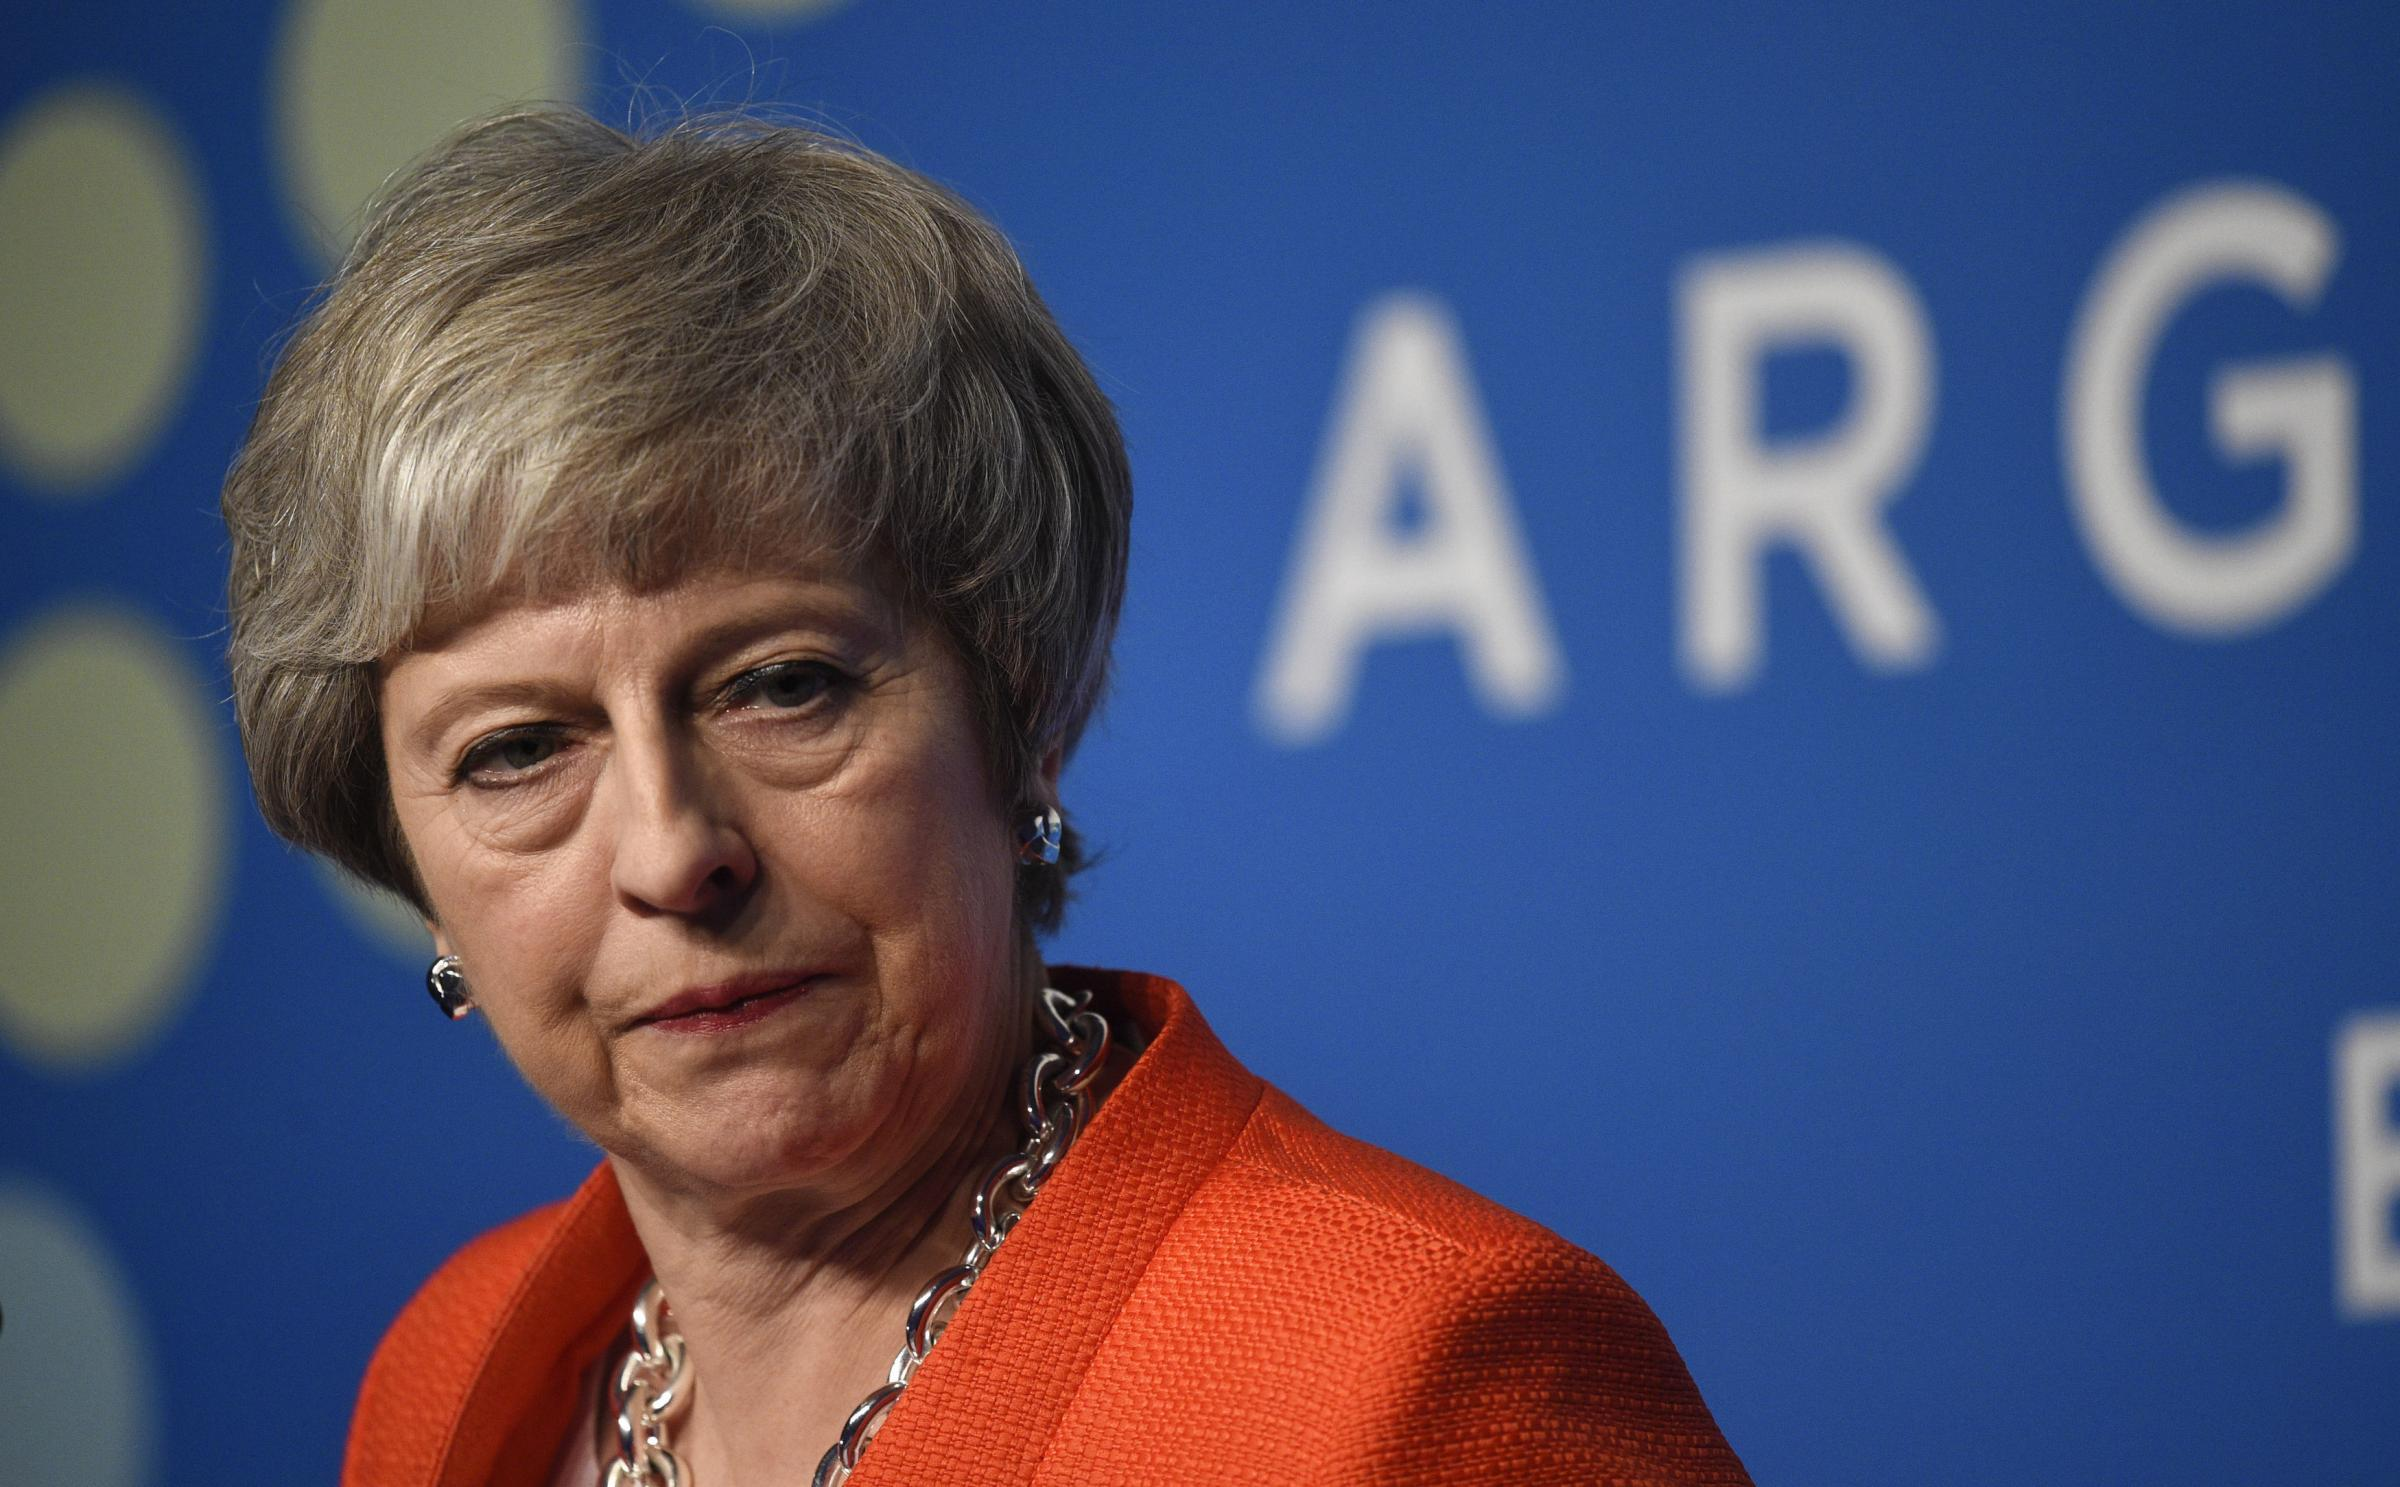 Theresa May is facing grave defeat on December 11